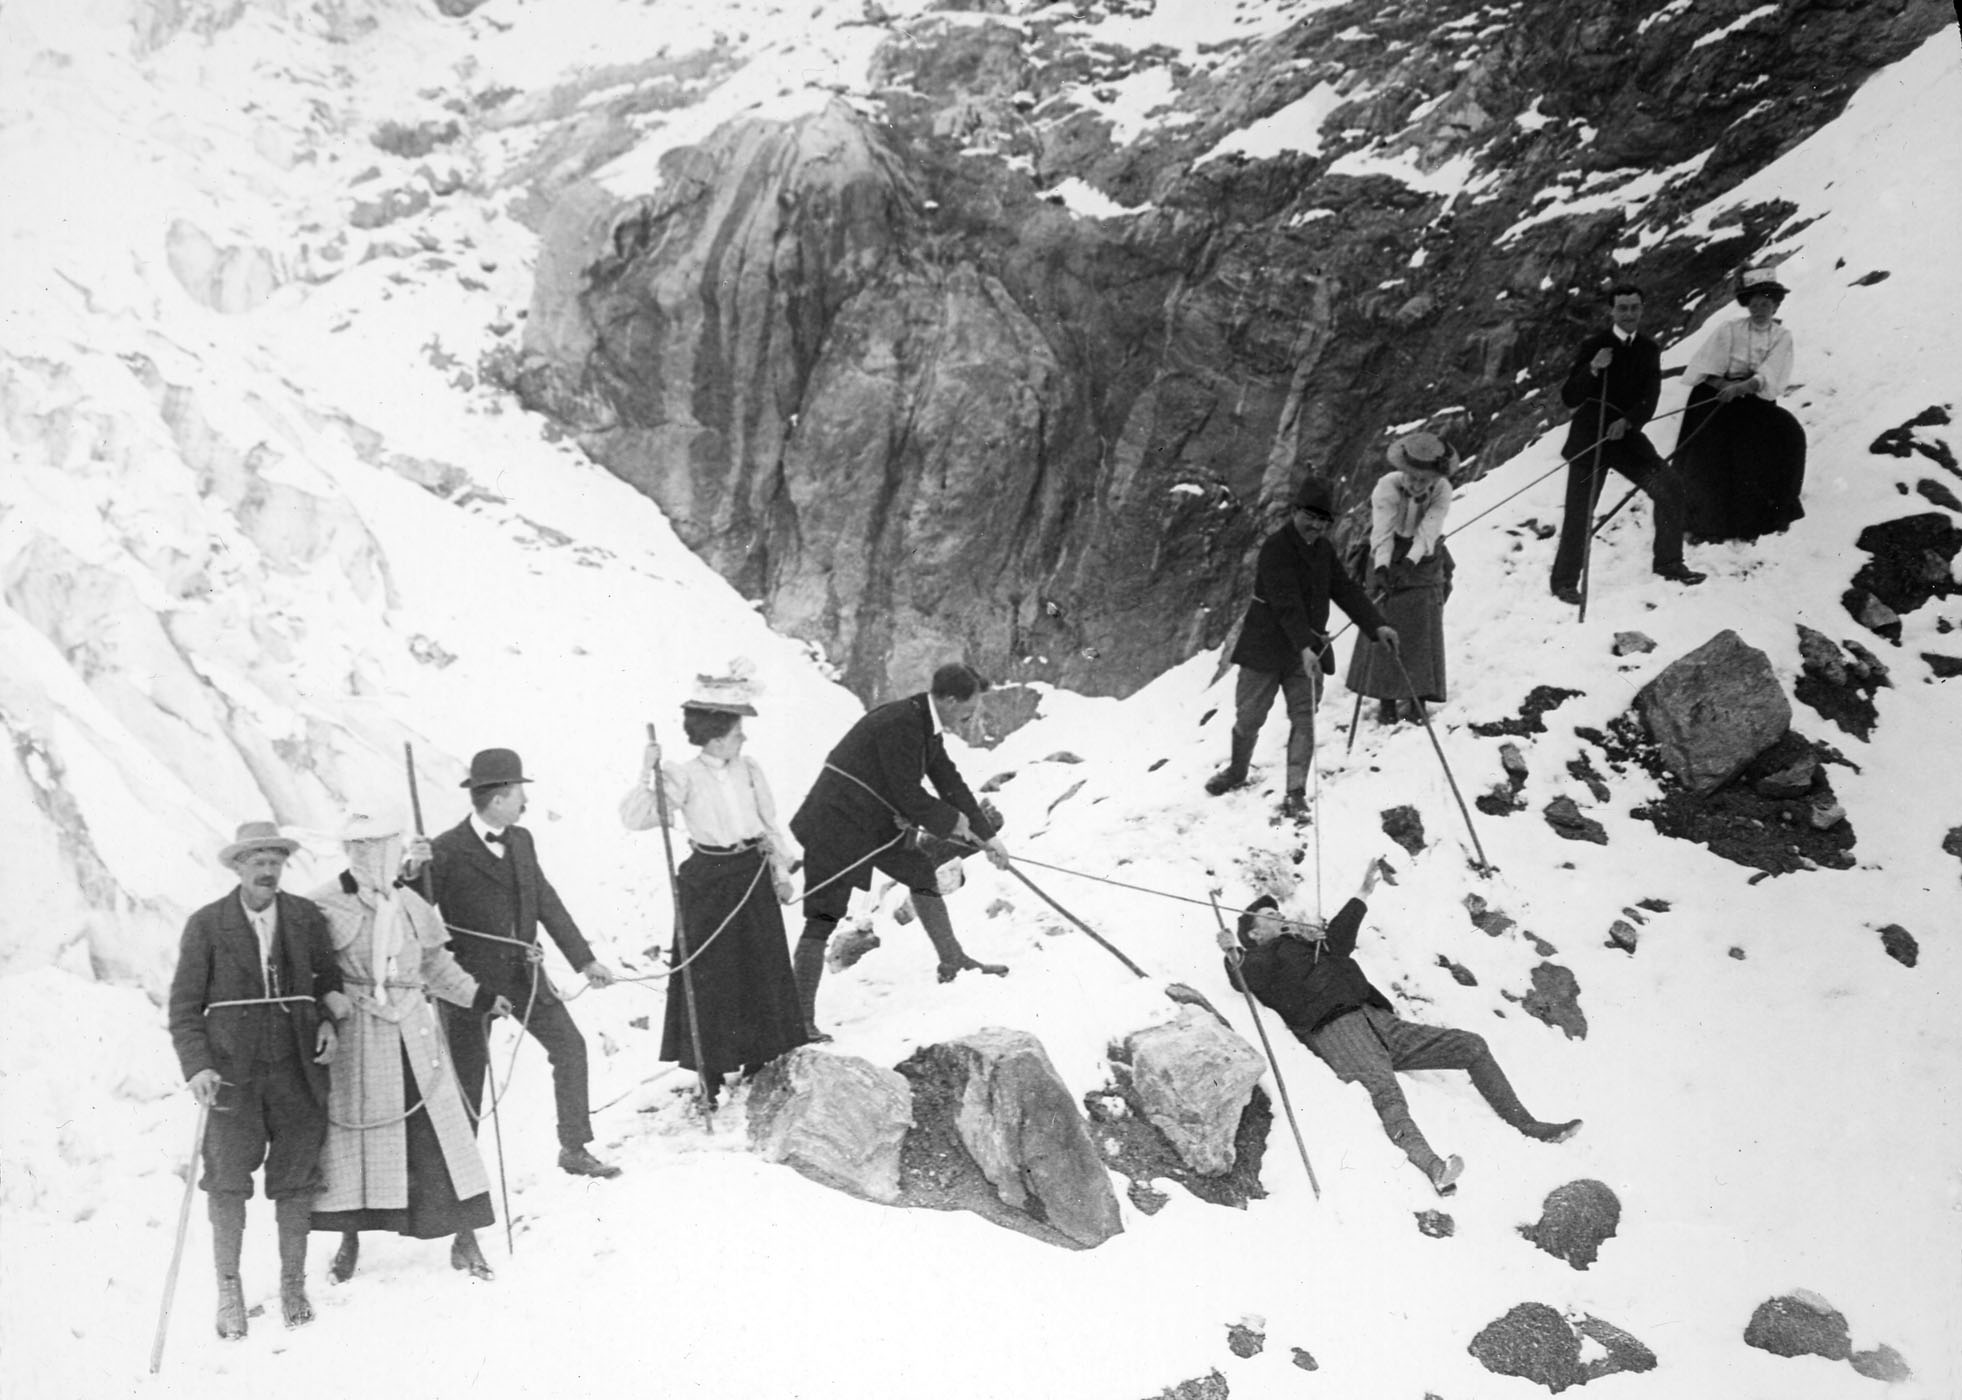 The Fall 1908